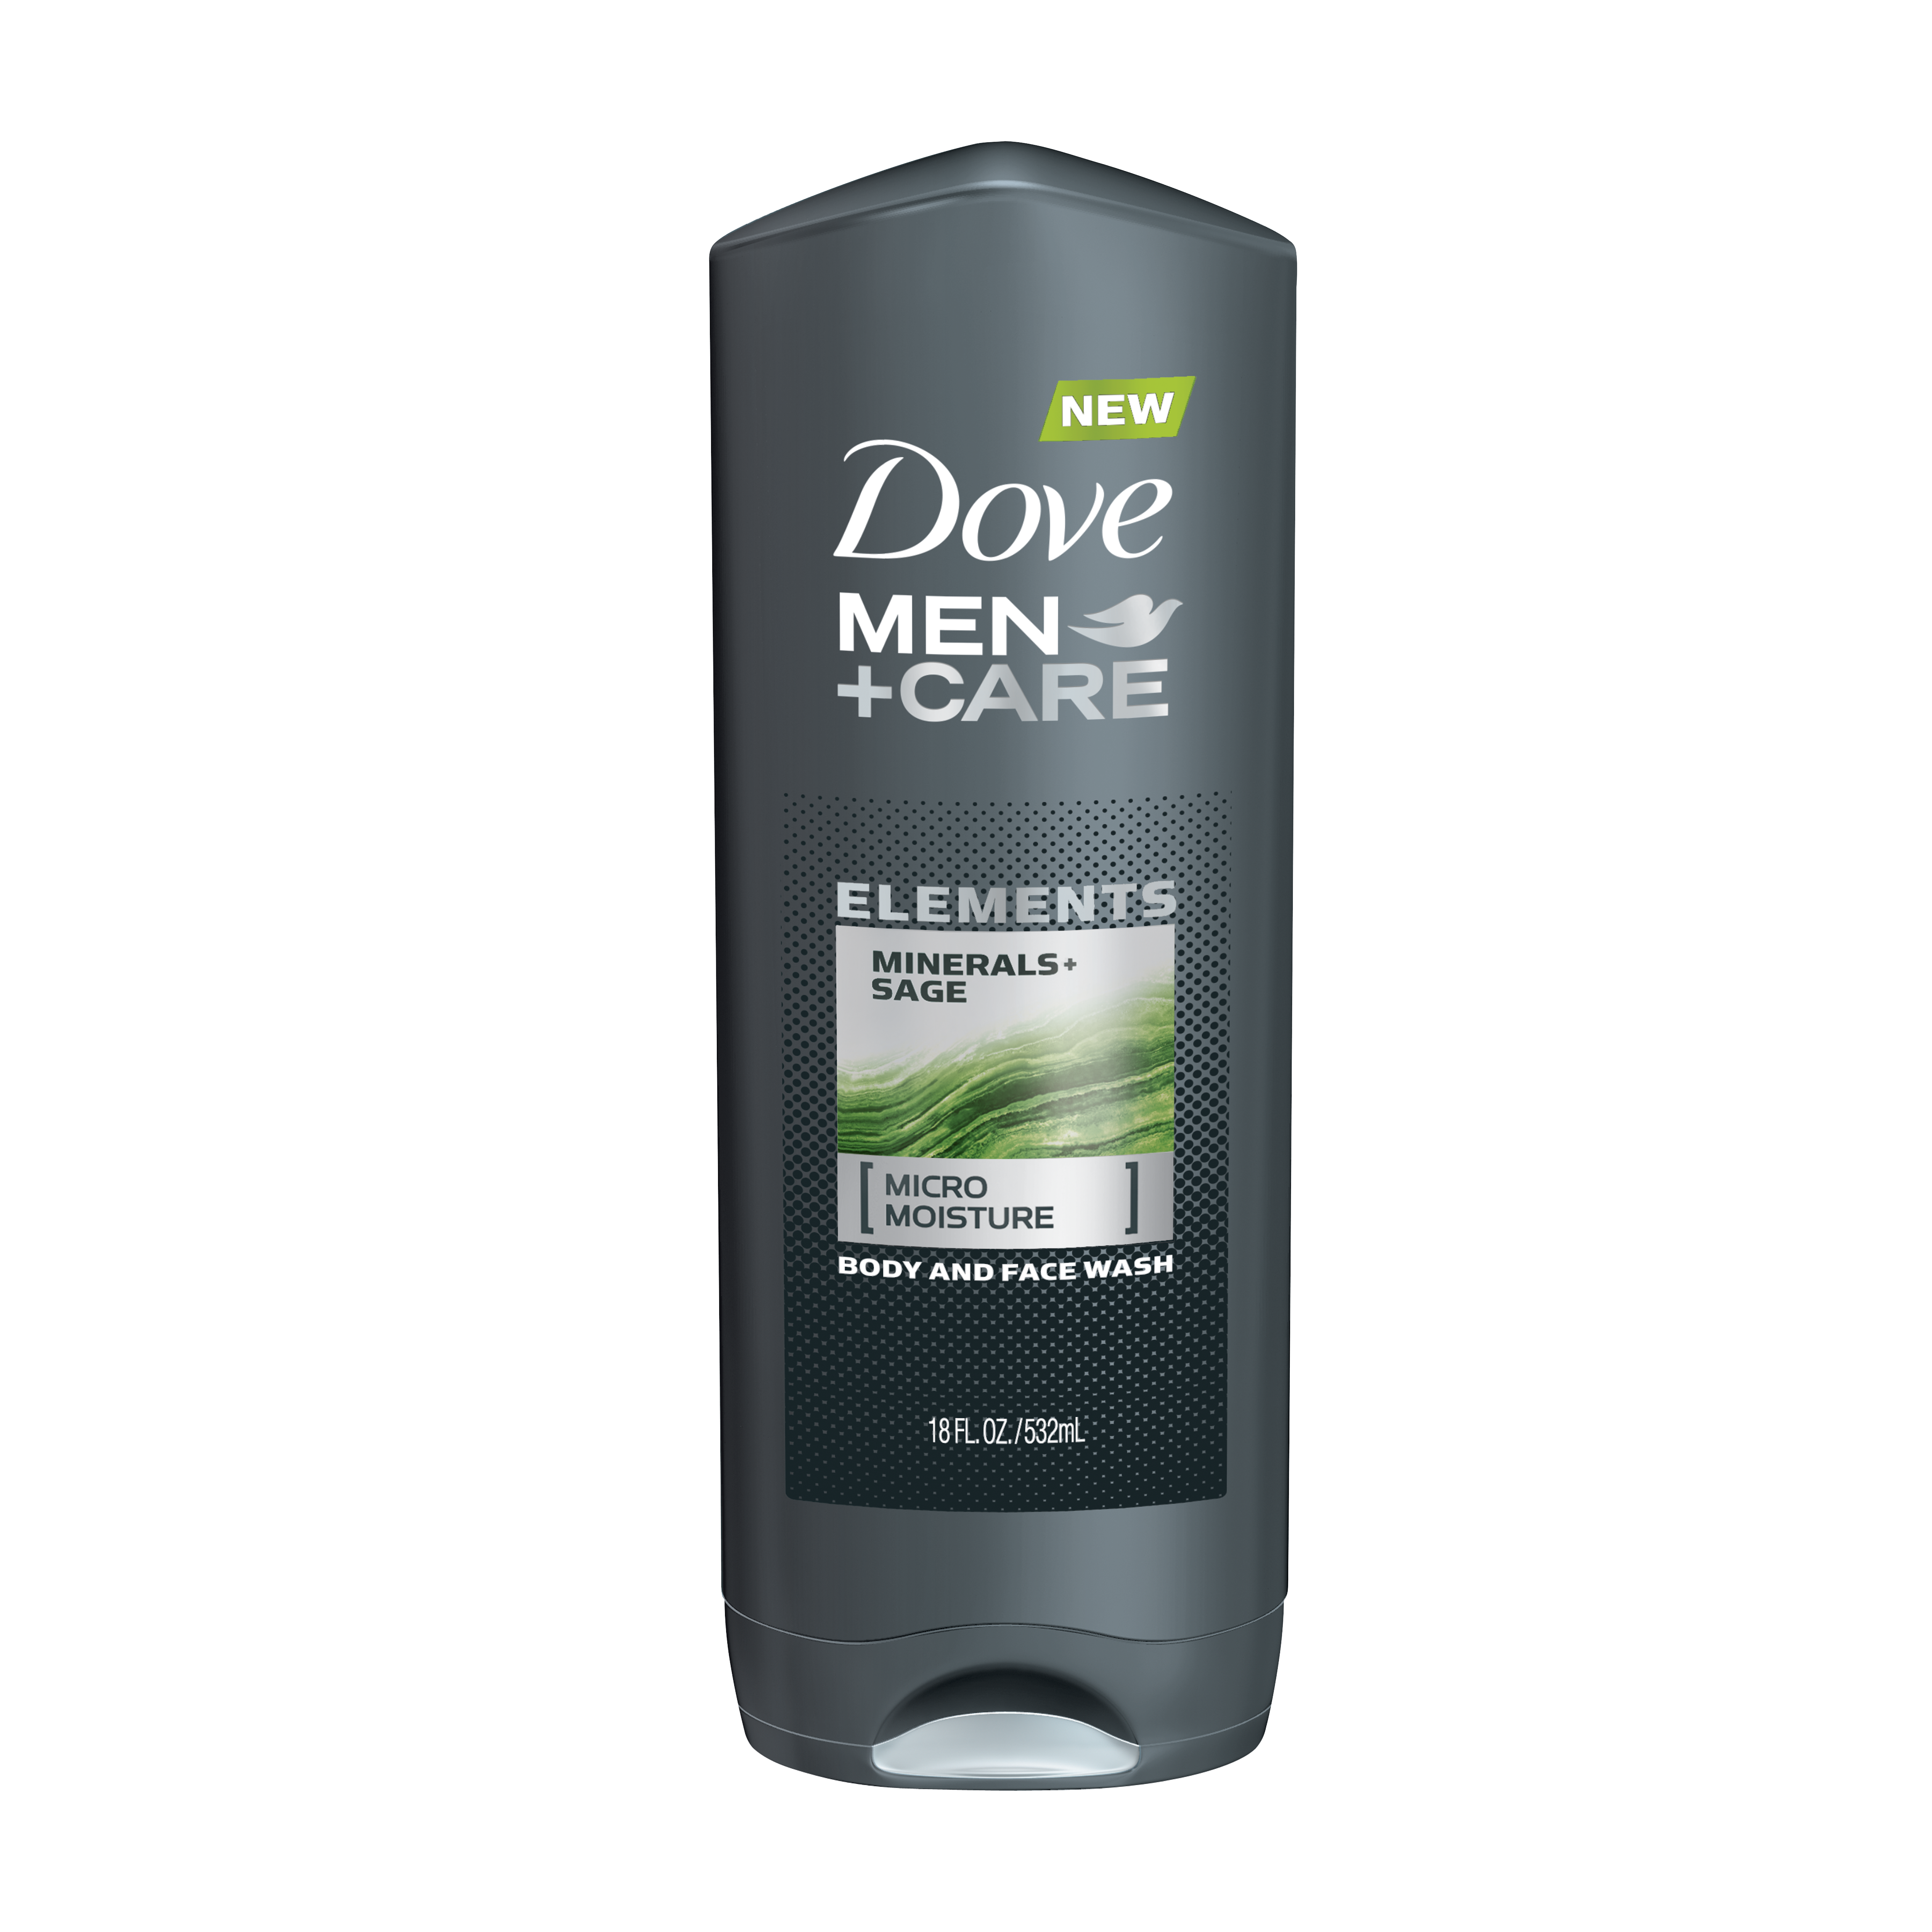 Dove men care clean. Perfume clipart spray deodorant